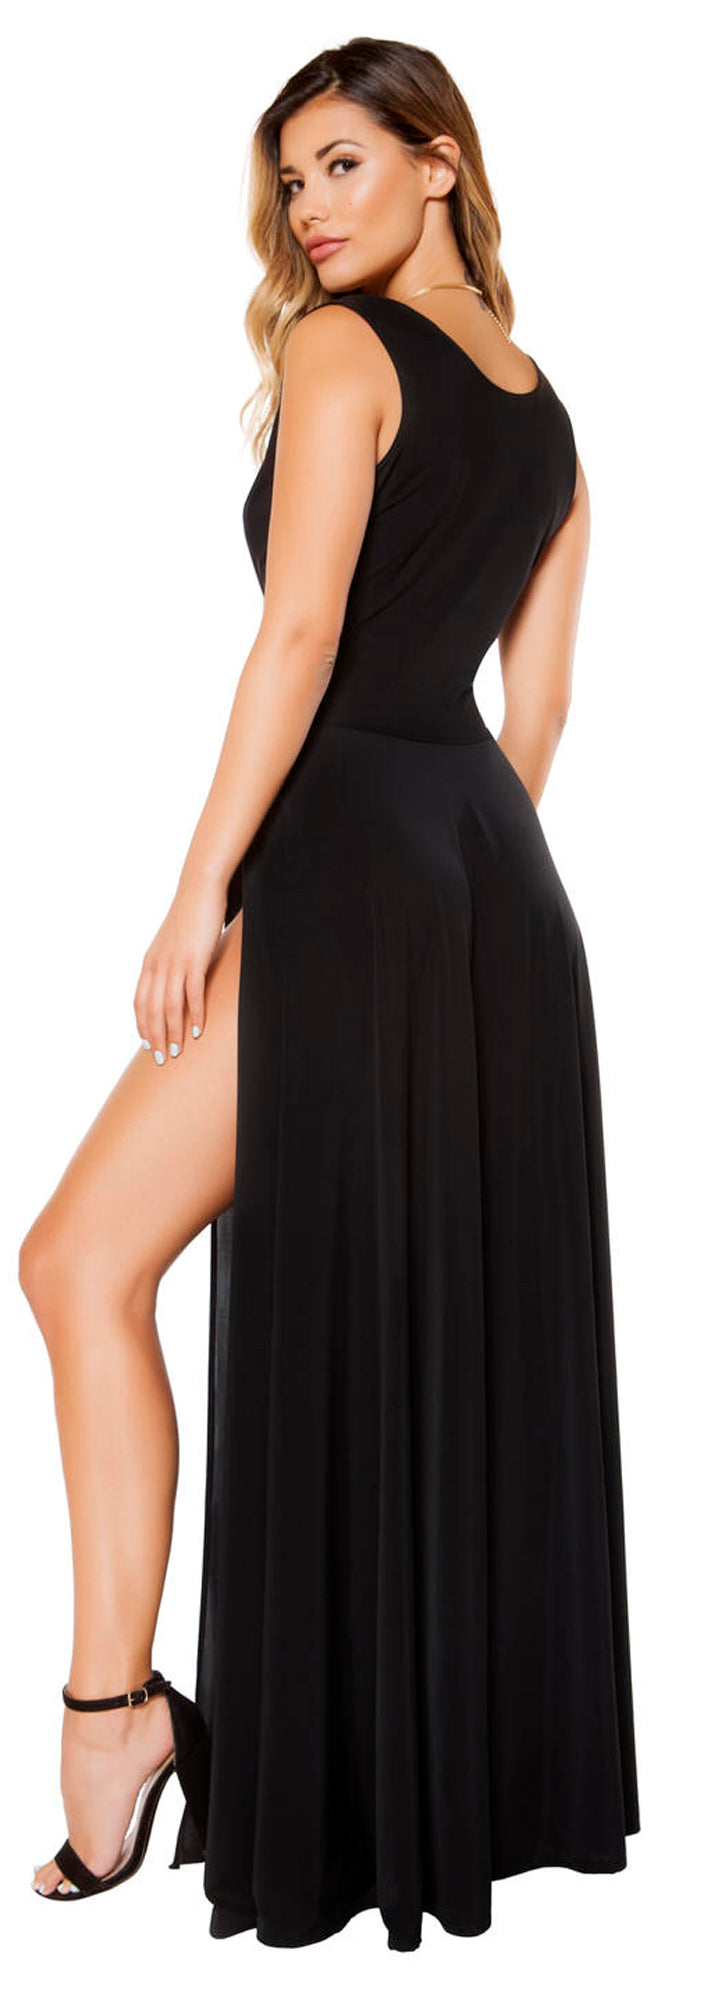 RM-3396 Maxi length black dress back